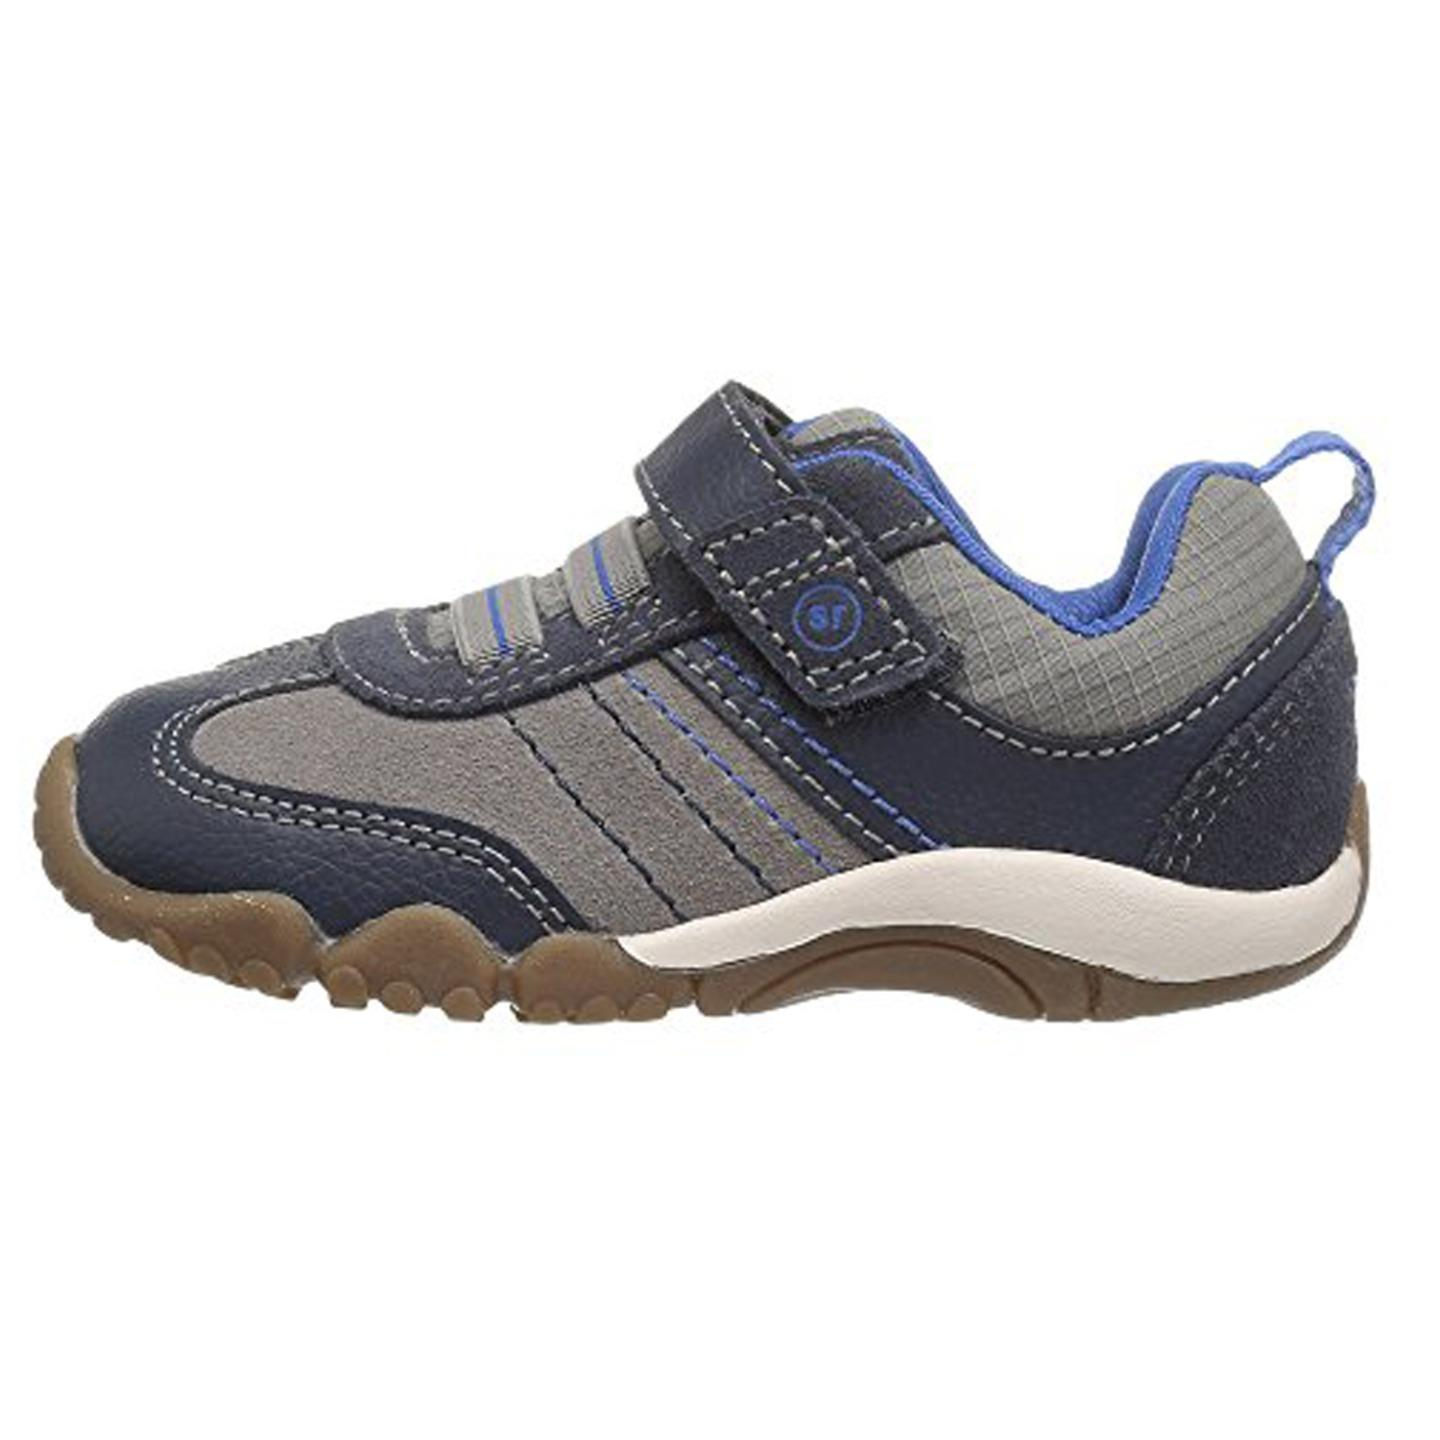 Stride Rite Boys' Srtech Prescott (Toddler) Sneaker Navy Stone 4 W by Stride Rite